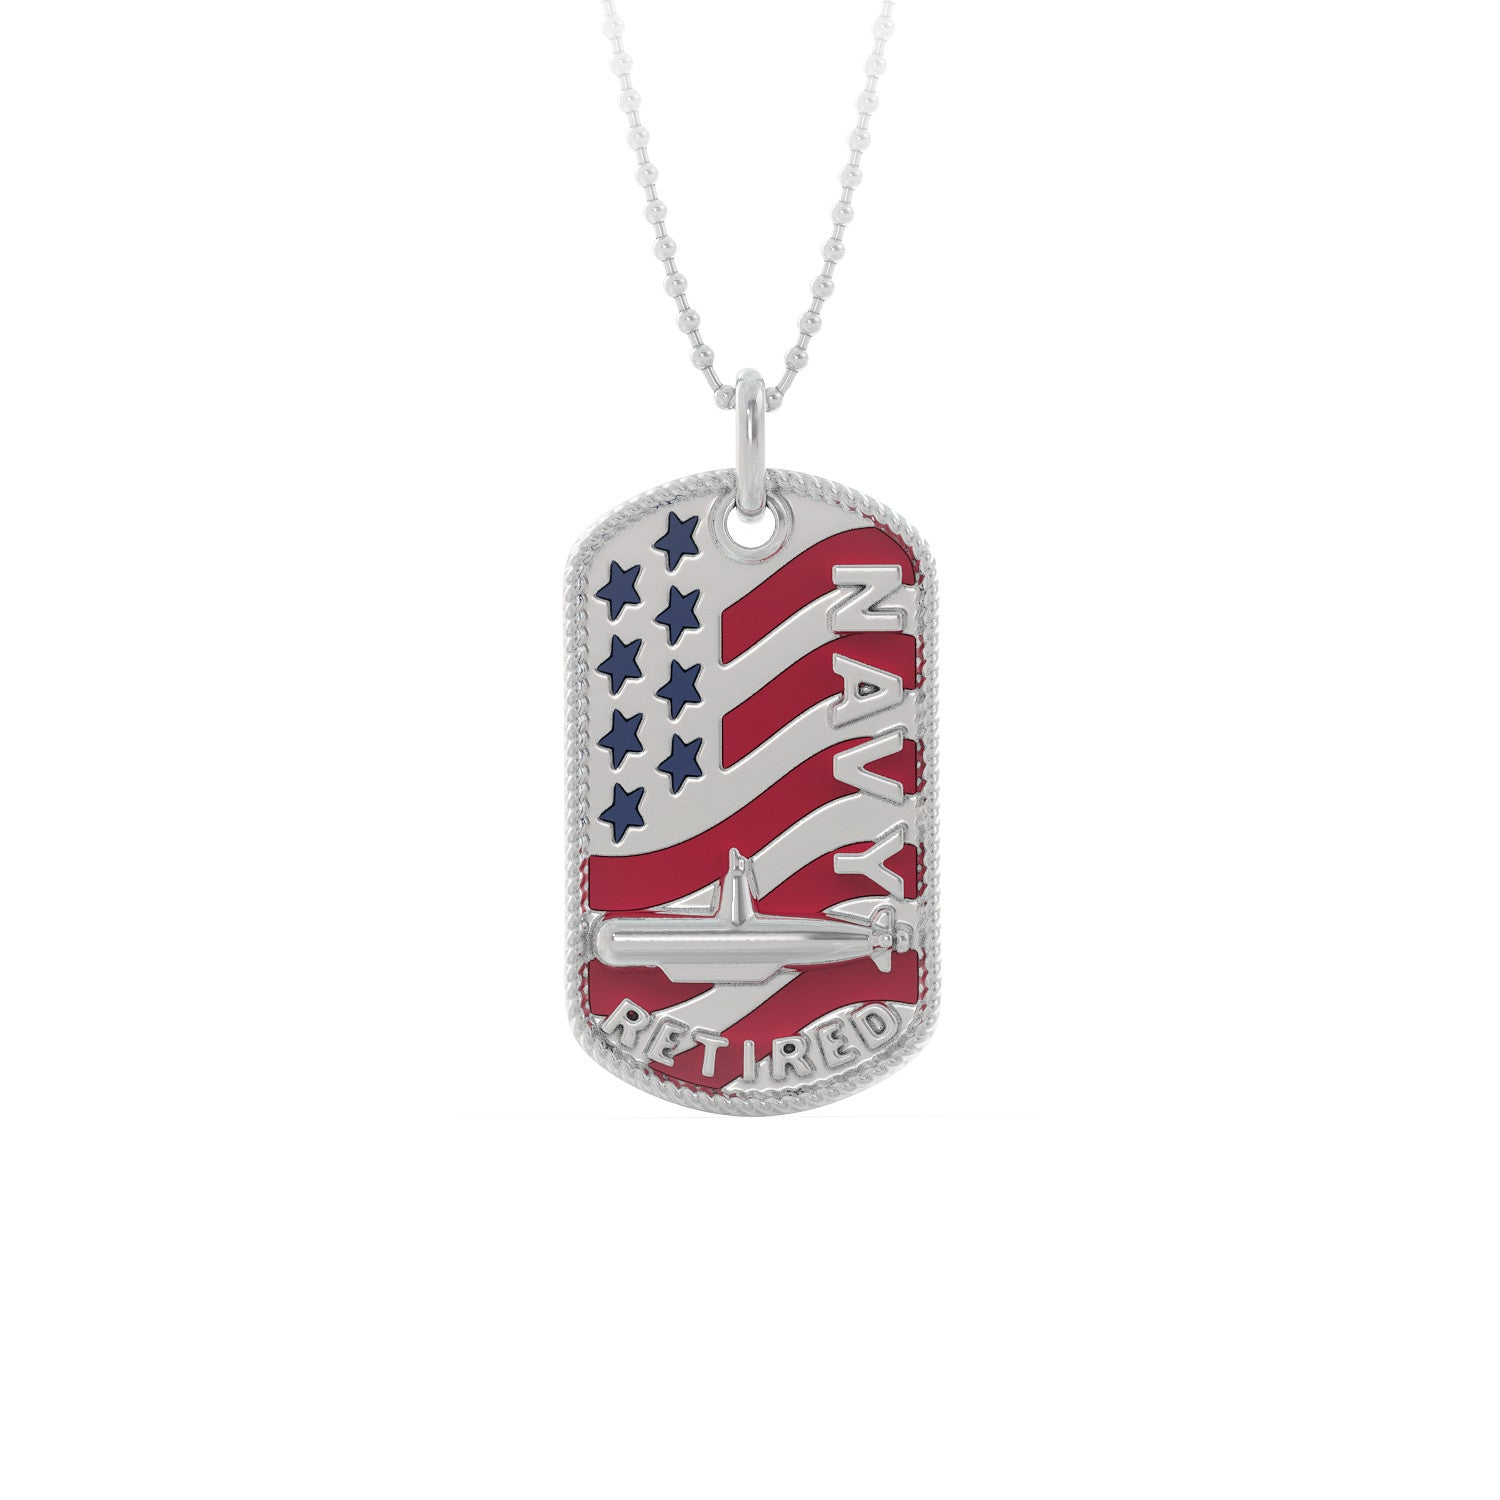 Navy Sub Service Retired Dog Tag Pendant